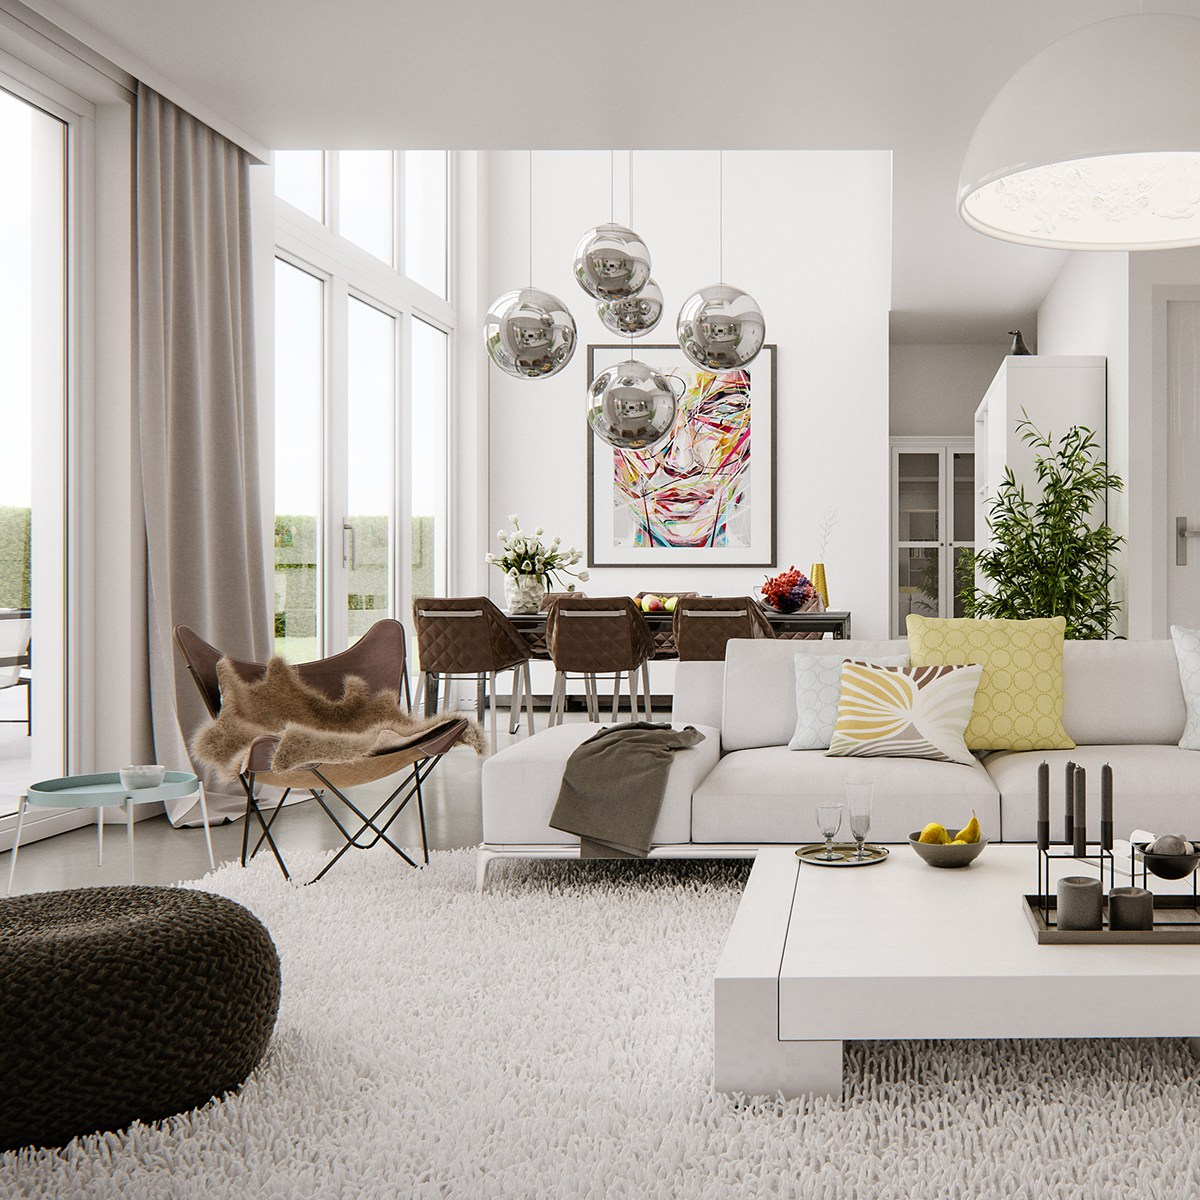 5 living rooms that demonstrate stylish modern design trends for Style deco salon